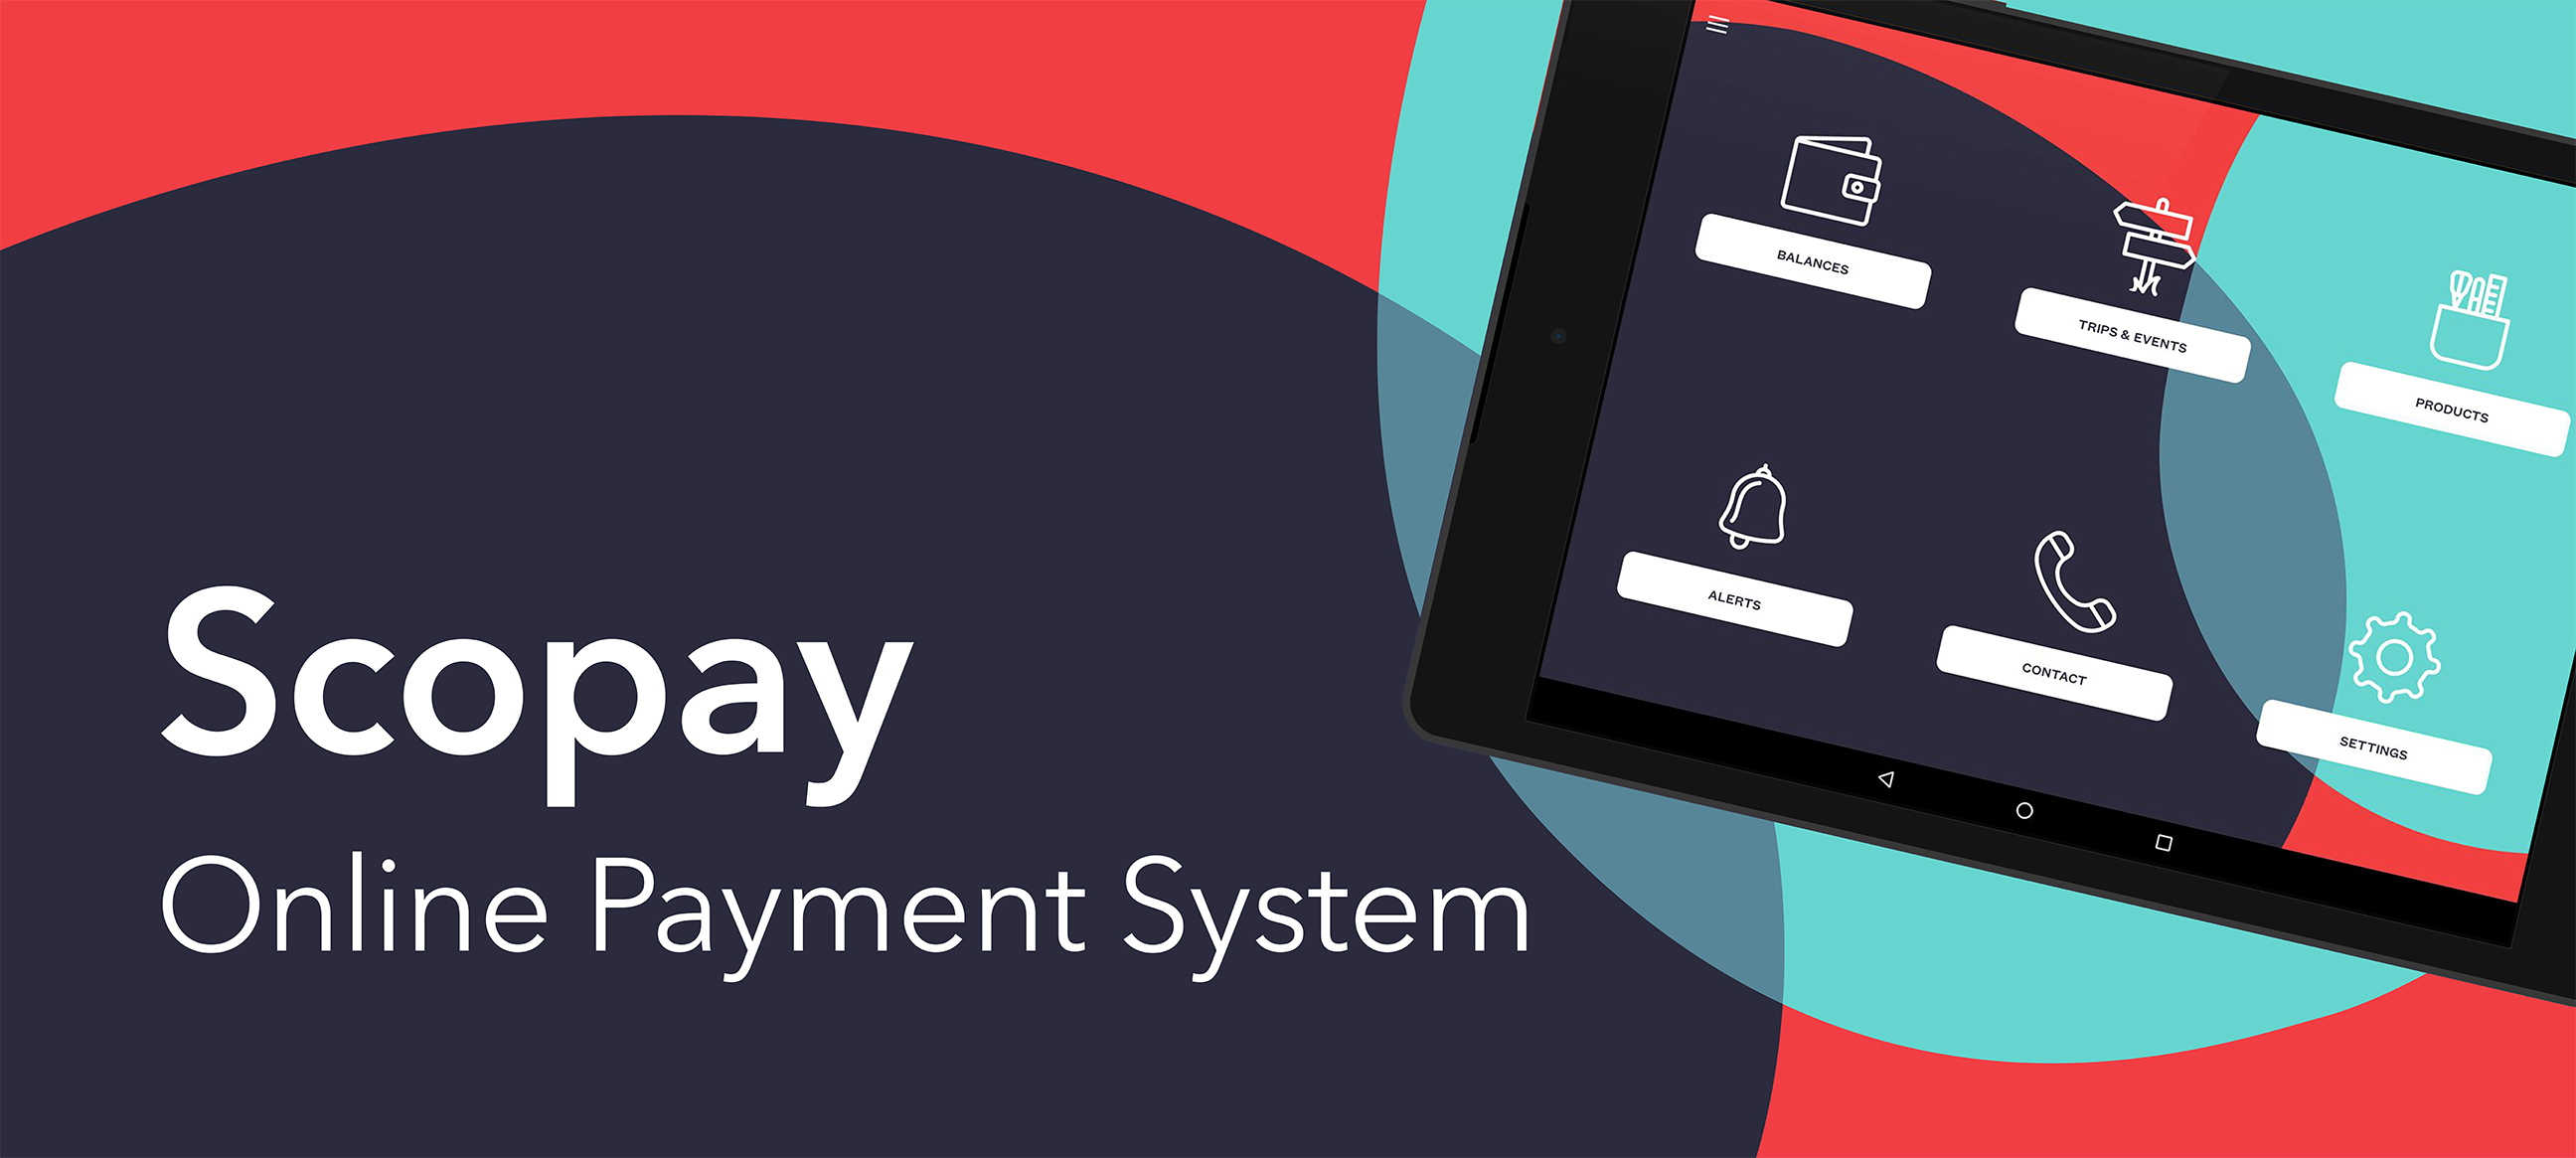 Scopay Online Payment System